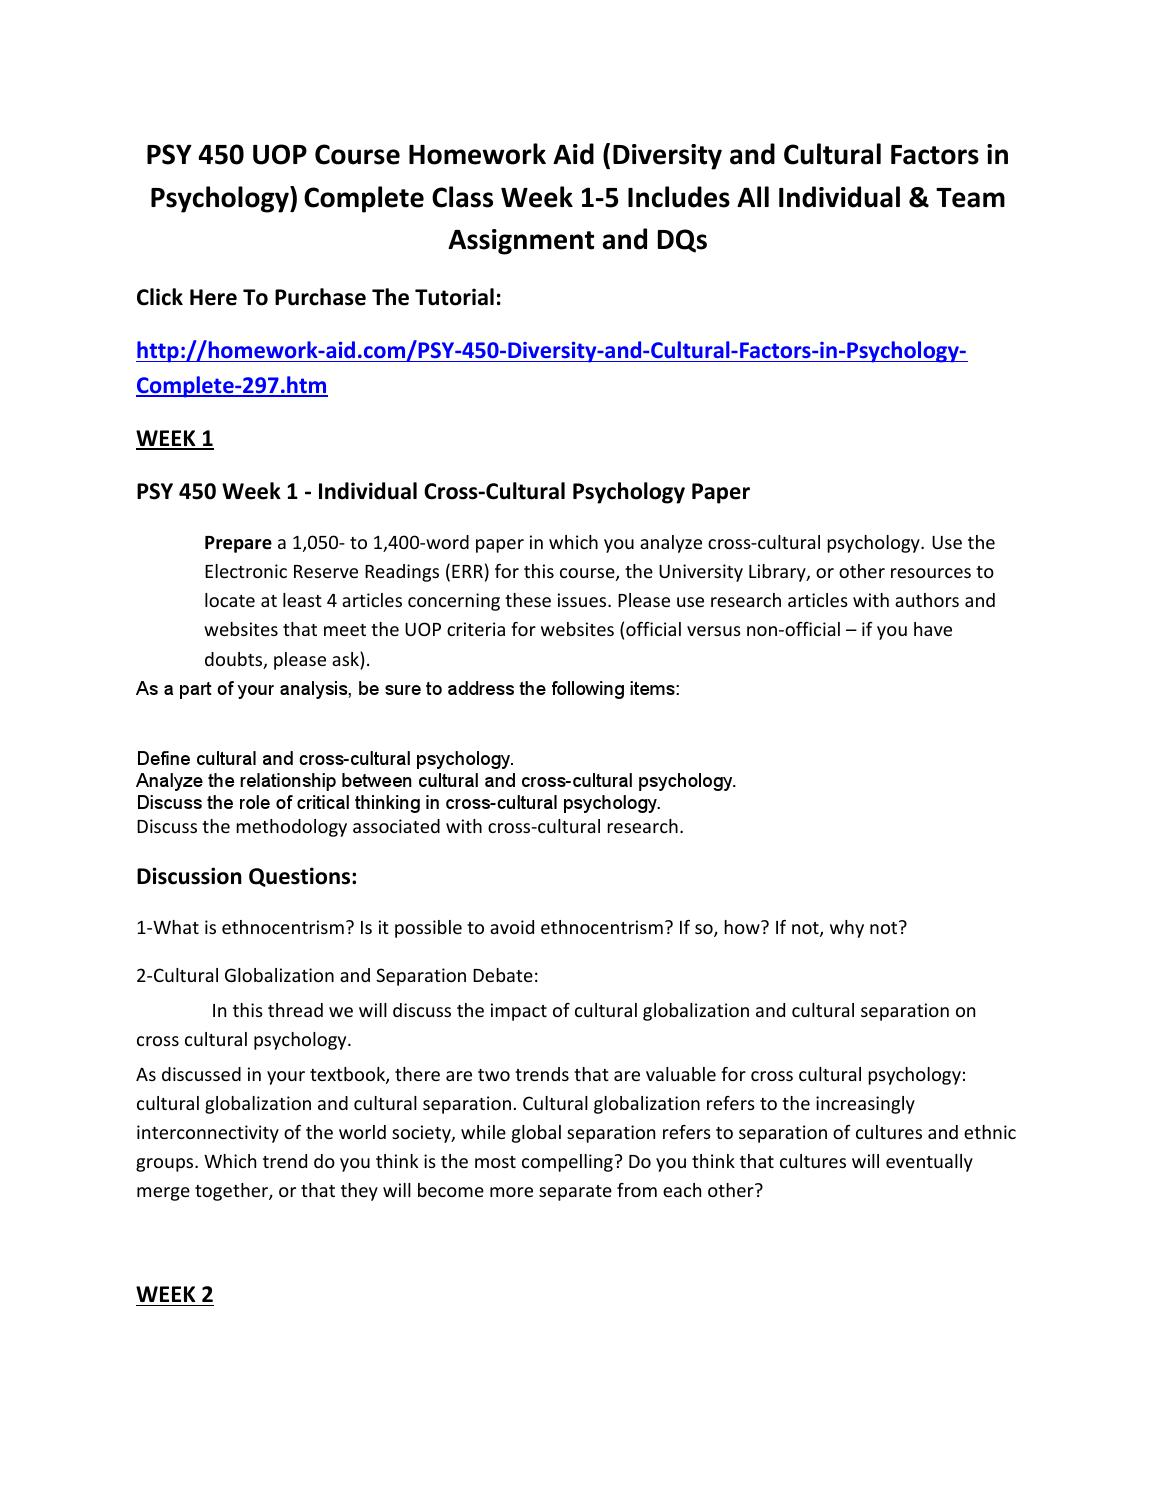 psy 450 introduction to cross cultural psychology I am desperate i need help on psy 450 writing a 2 powerpoints learning team assignment due next issues in cross-cultural psychology introduction: include a.